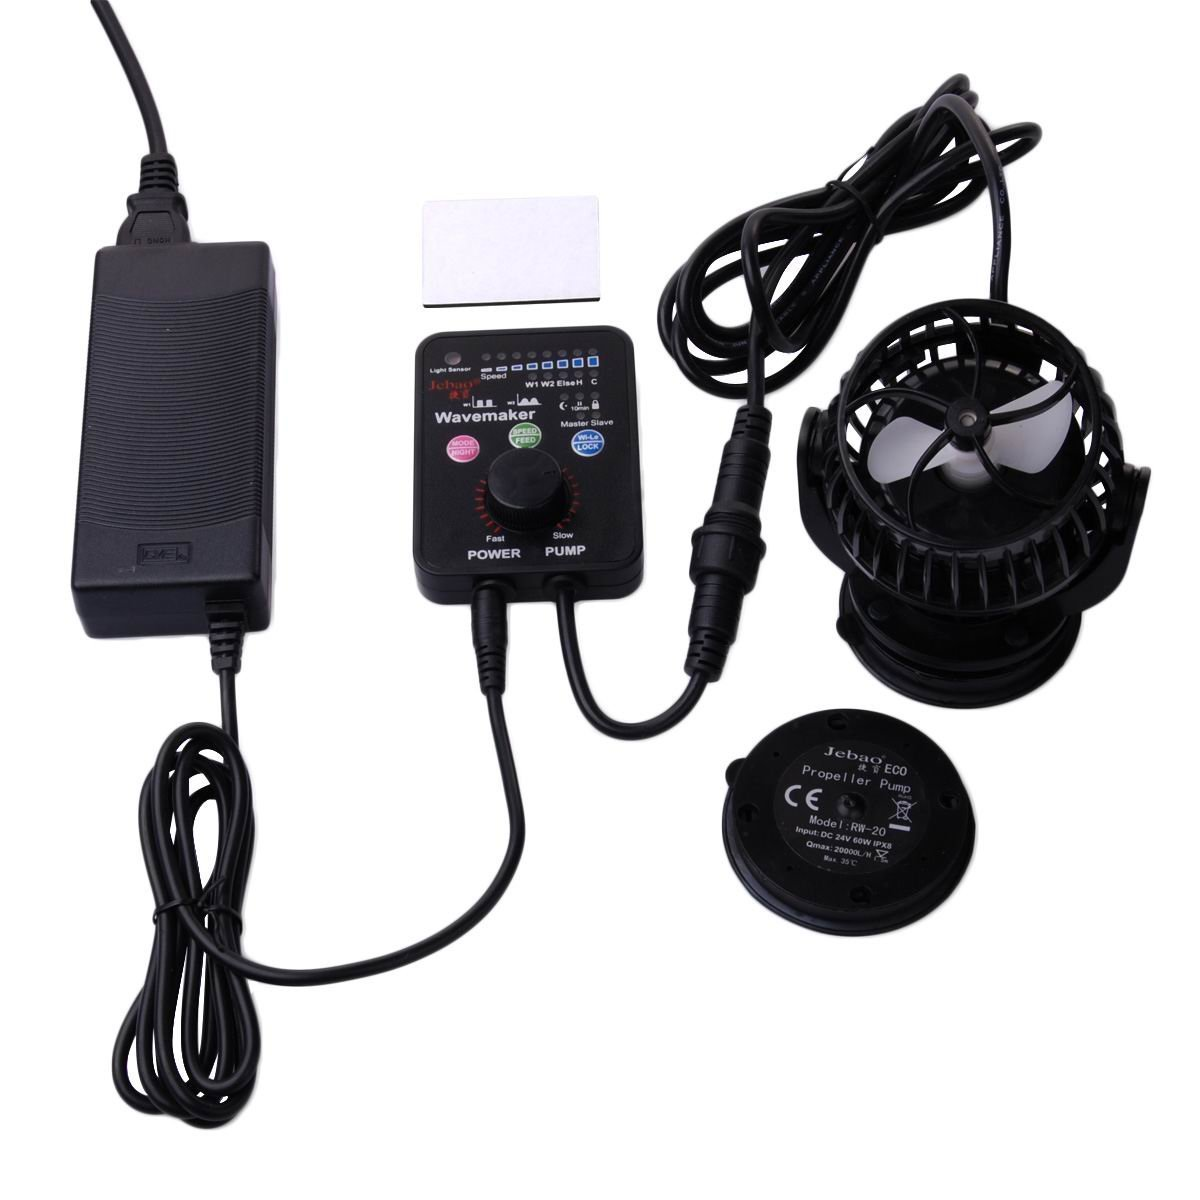 Jebao PP-20 2600-5300 GPH Wavemaker with Controller and Magnet Mount